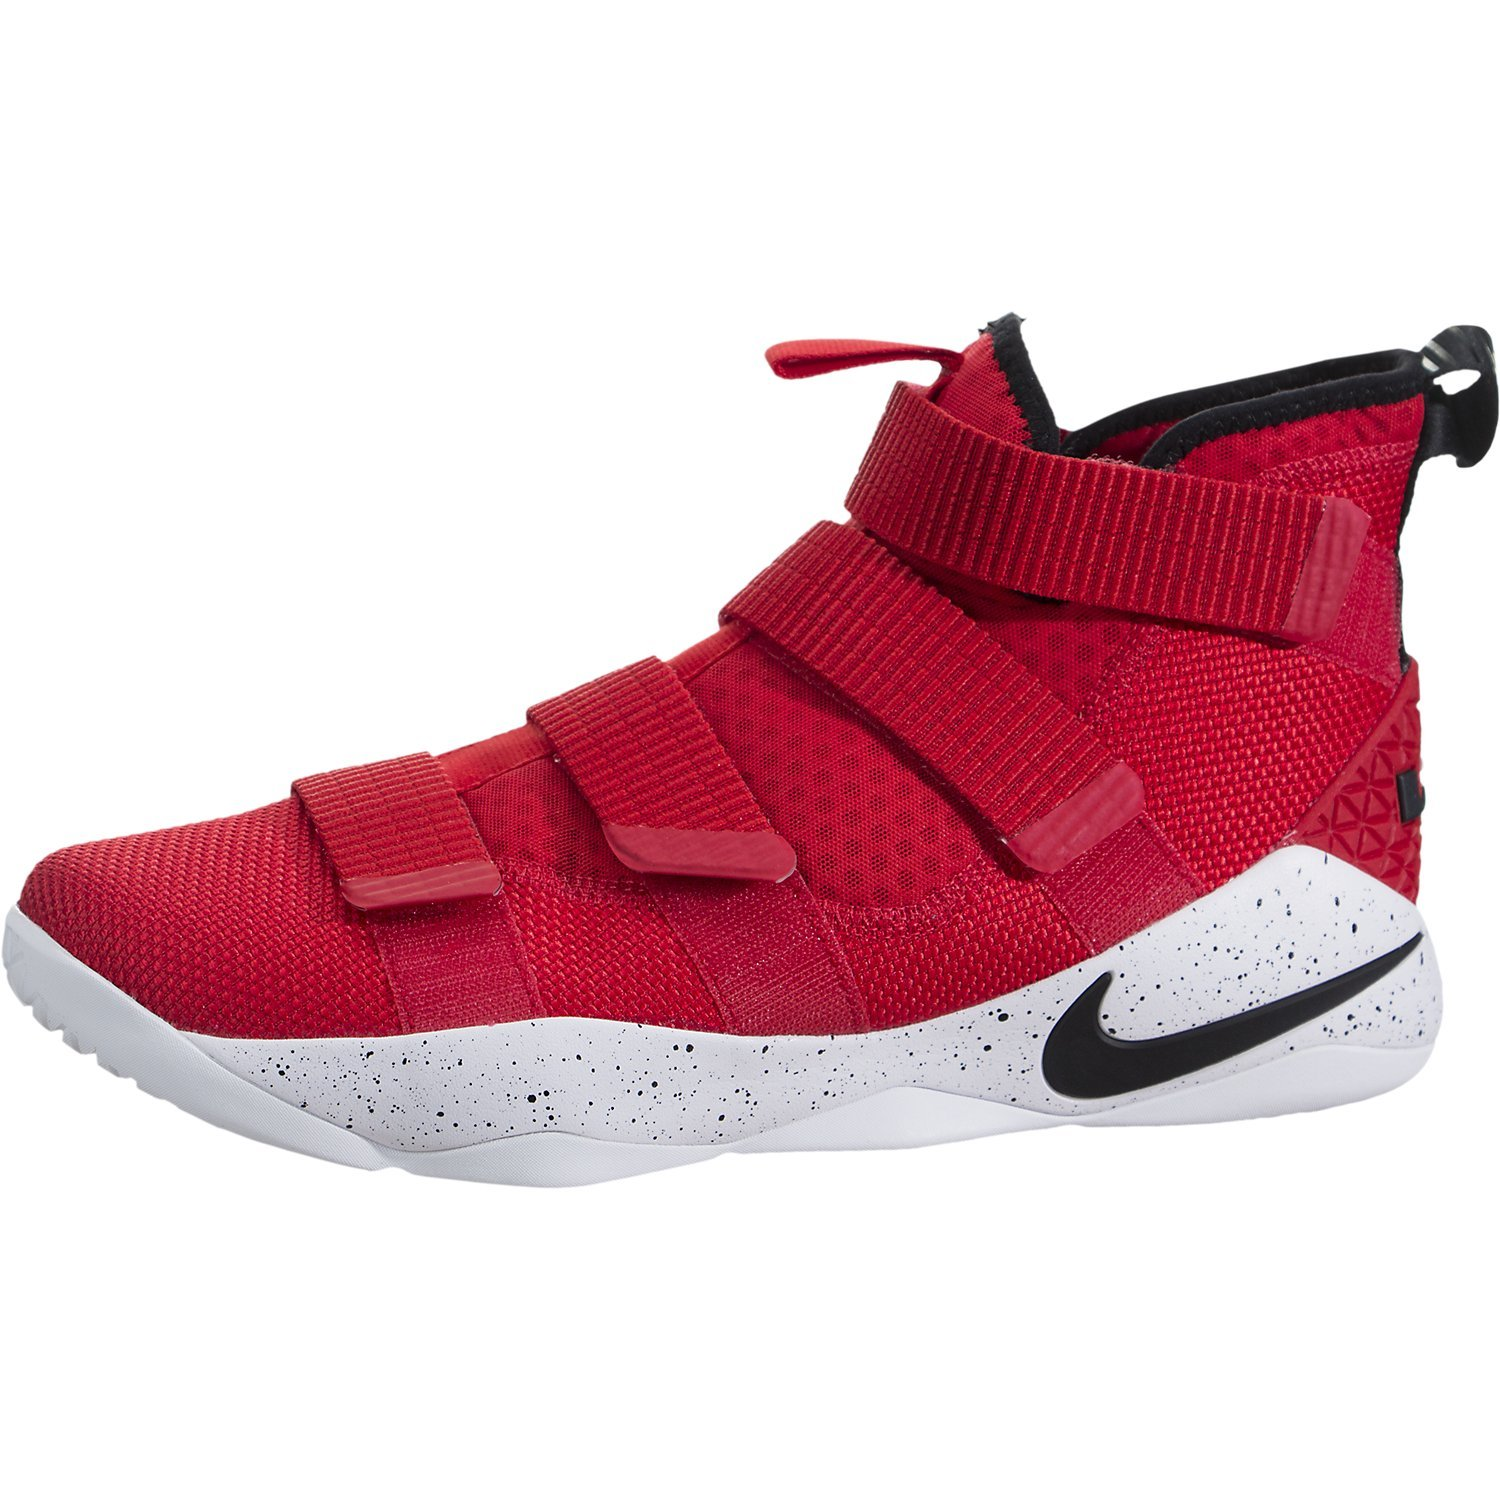 the best attitude 8828a 5d59b Galleon - Nike LeBron Soldier XI 897644-601 Black Red Crimson Men s  Basketball Shoes